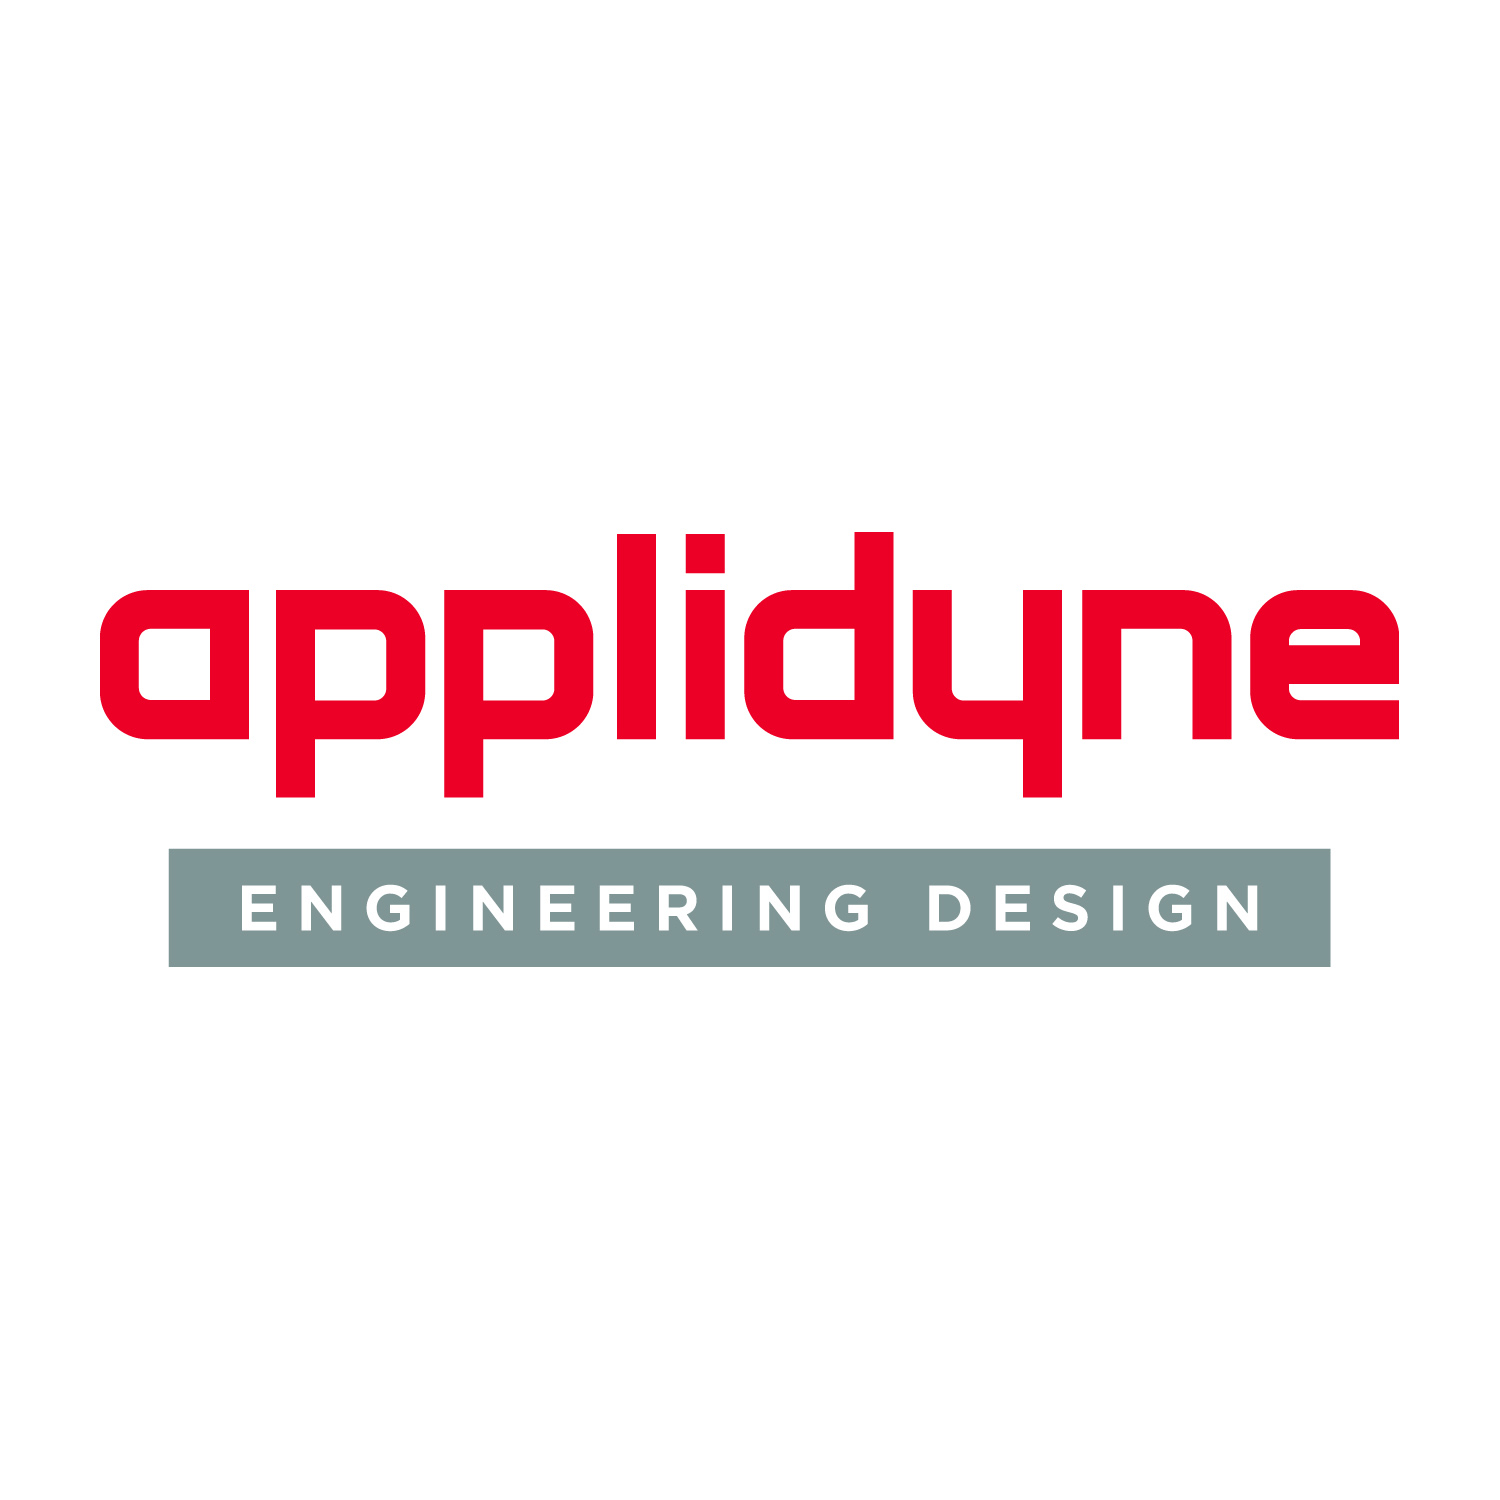 Applidyne is now a Registered Research Agency